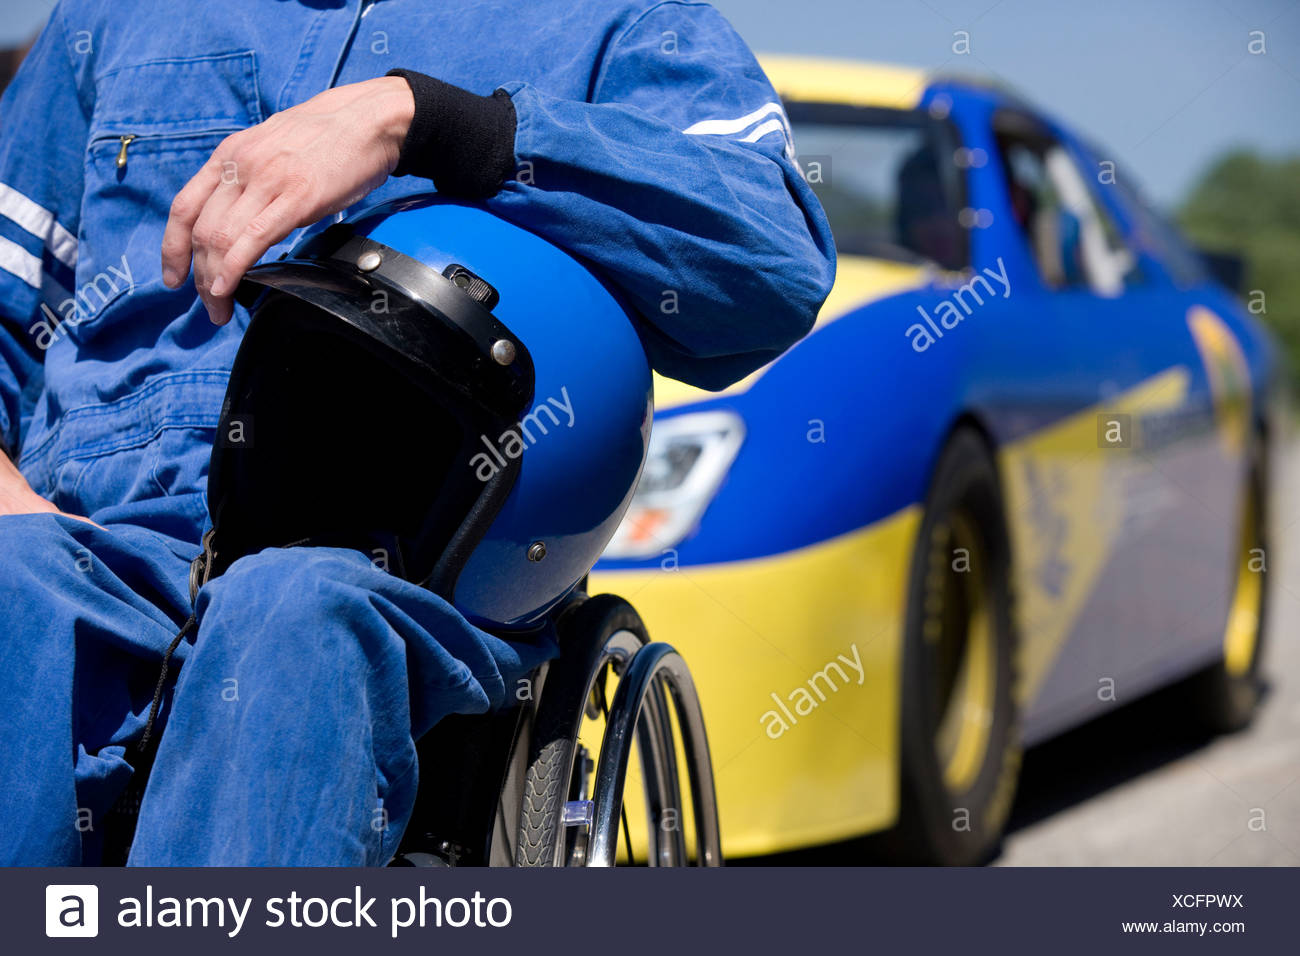 Disability race car driver, mid section, car in background - Stock Image